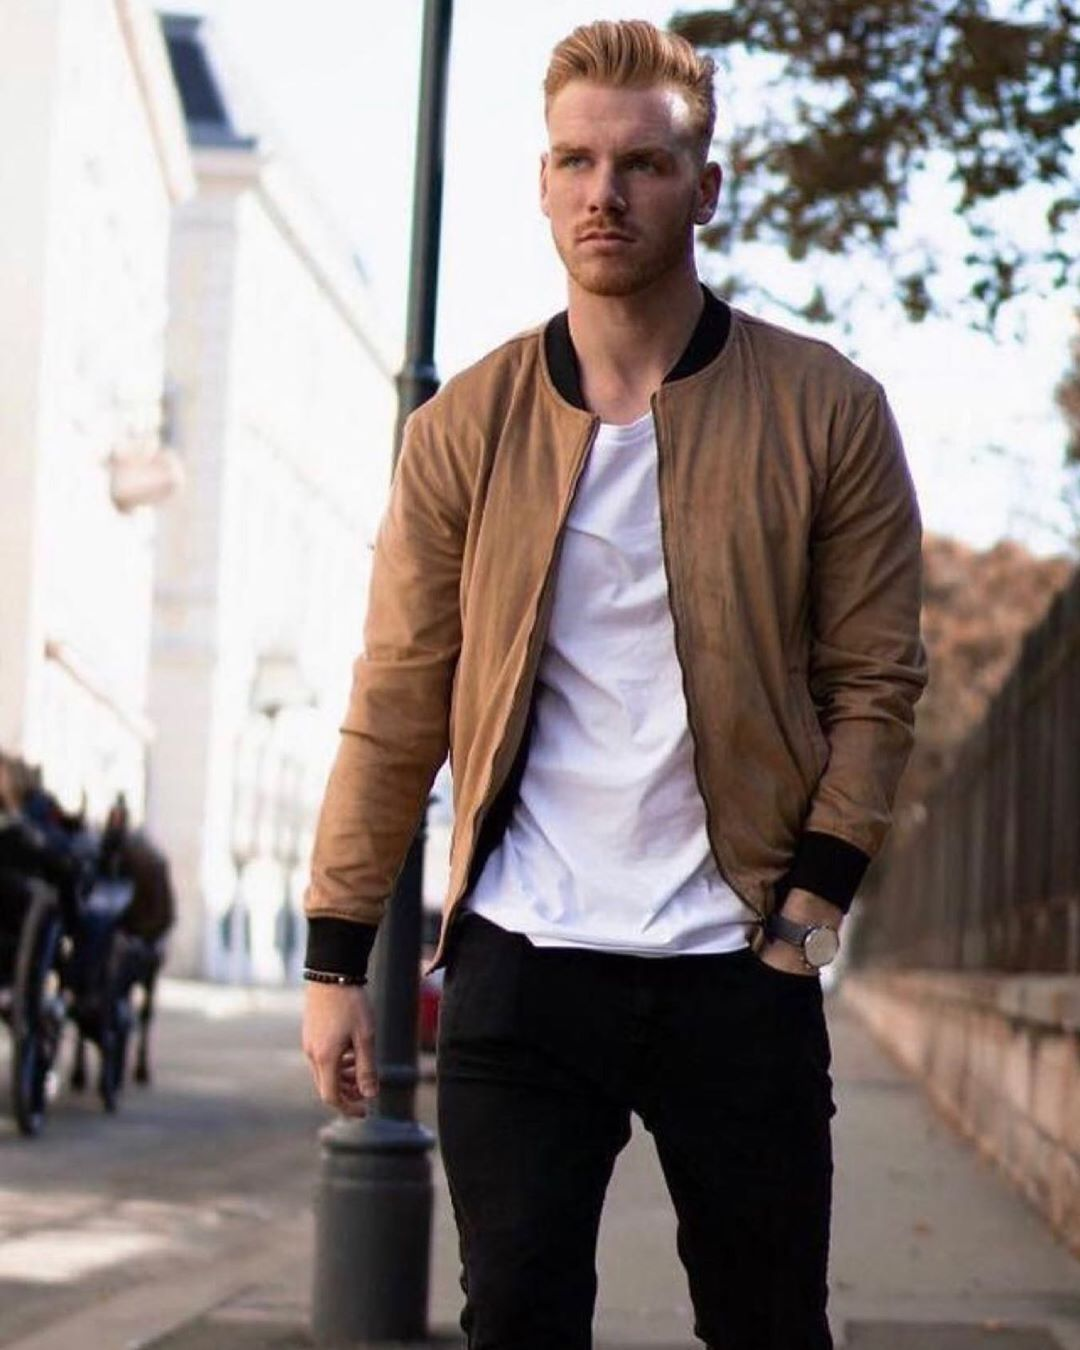 Men S Fashion Or Style Outfit Ideas Bomber Jacket With Simple White Tee And Black Jeans Mens Fashion Summer Mens Fashion Casual Mens Outfits [ 1350 x 1080 Pixel ]